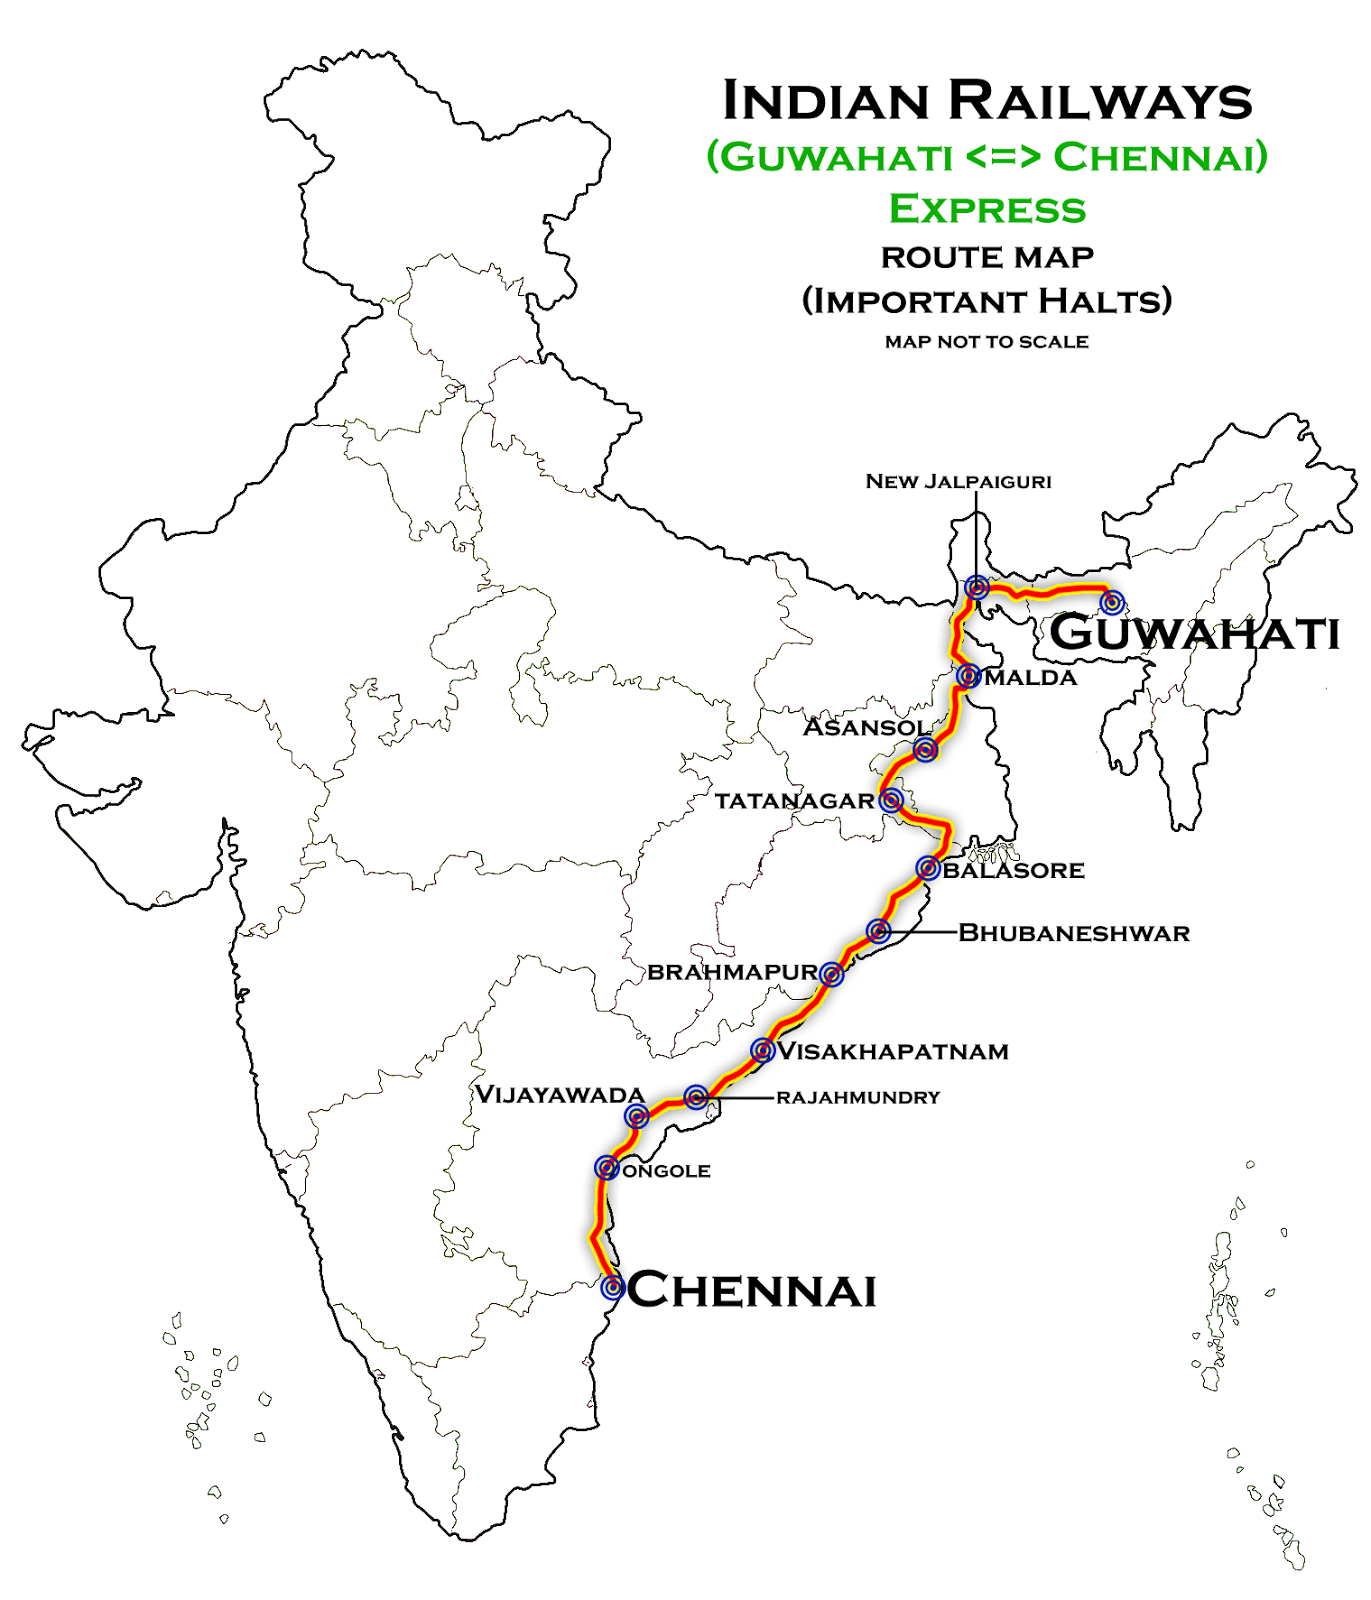 Guwahati Express largest railway rotue in India